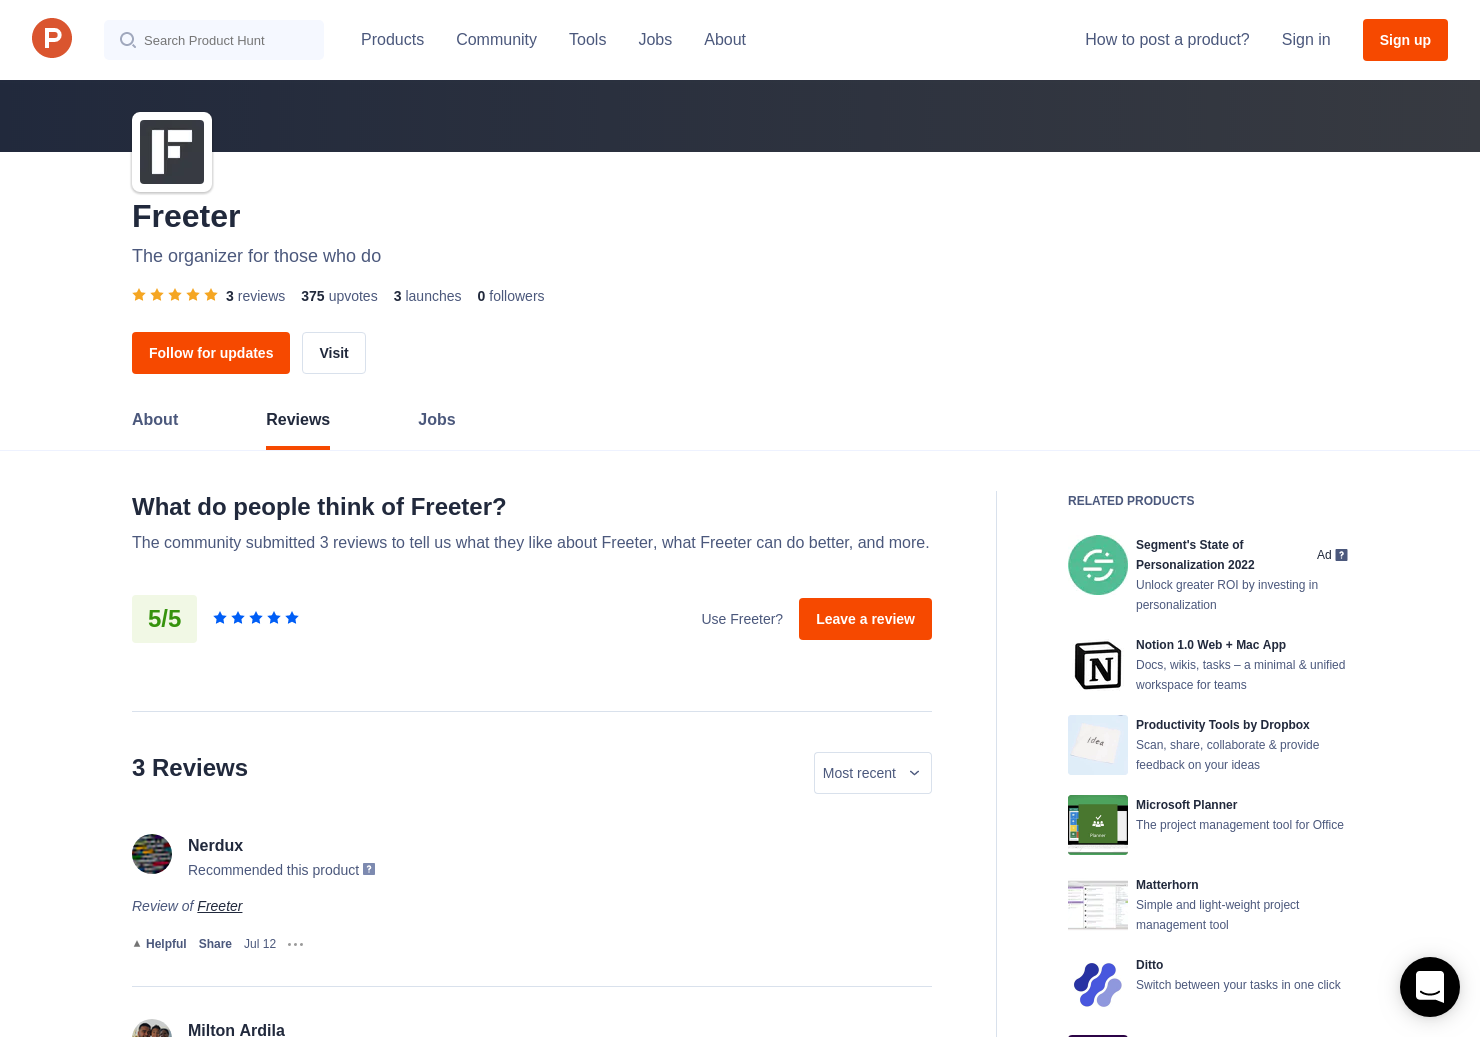 Freeter 1 0 Reviews - Pros, Cons and Rating | Product Hunt